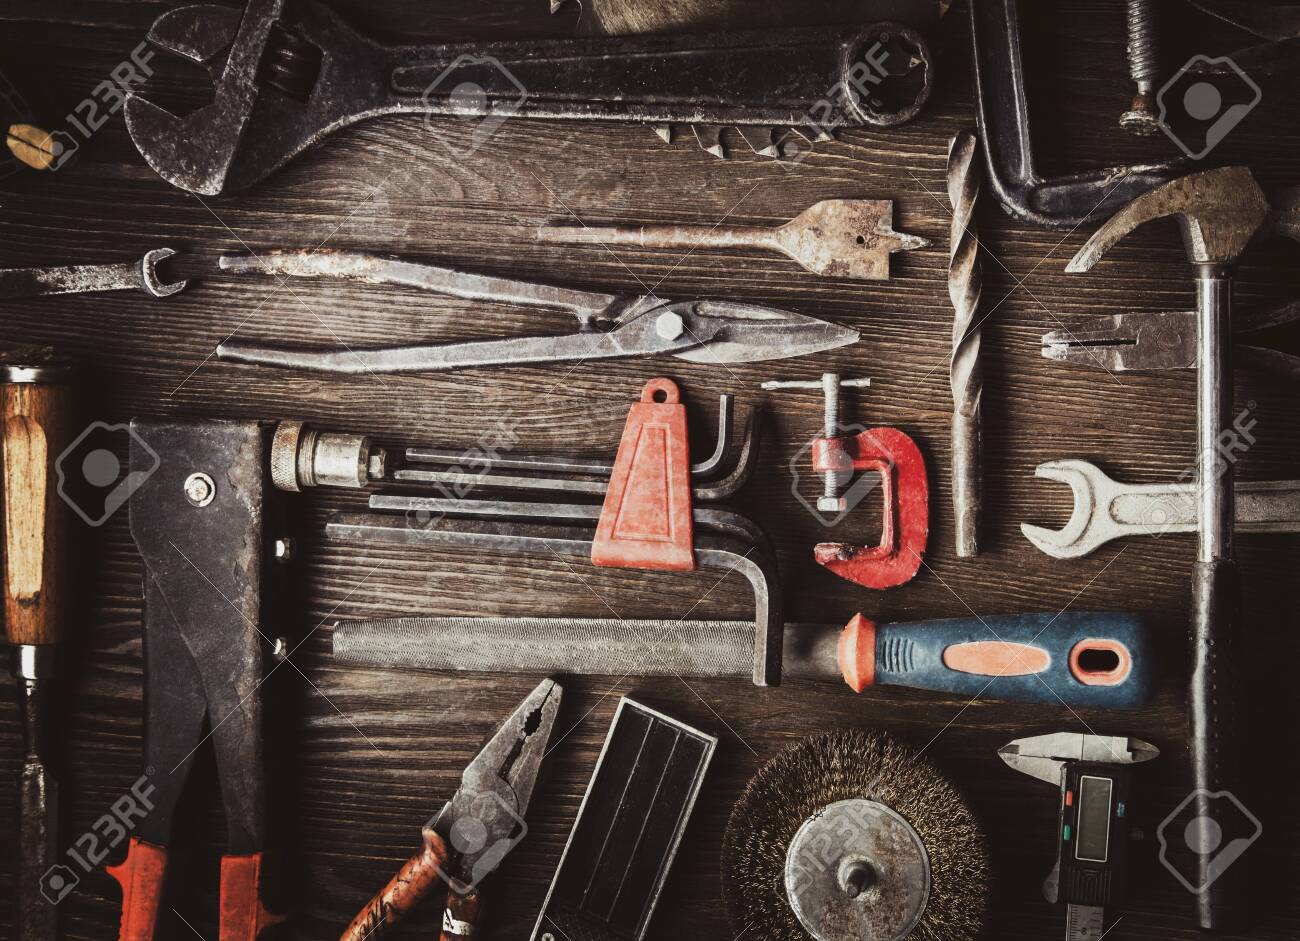 grungy old tools on a wooden background (processing cross-process) - 121579439